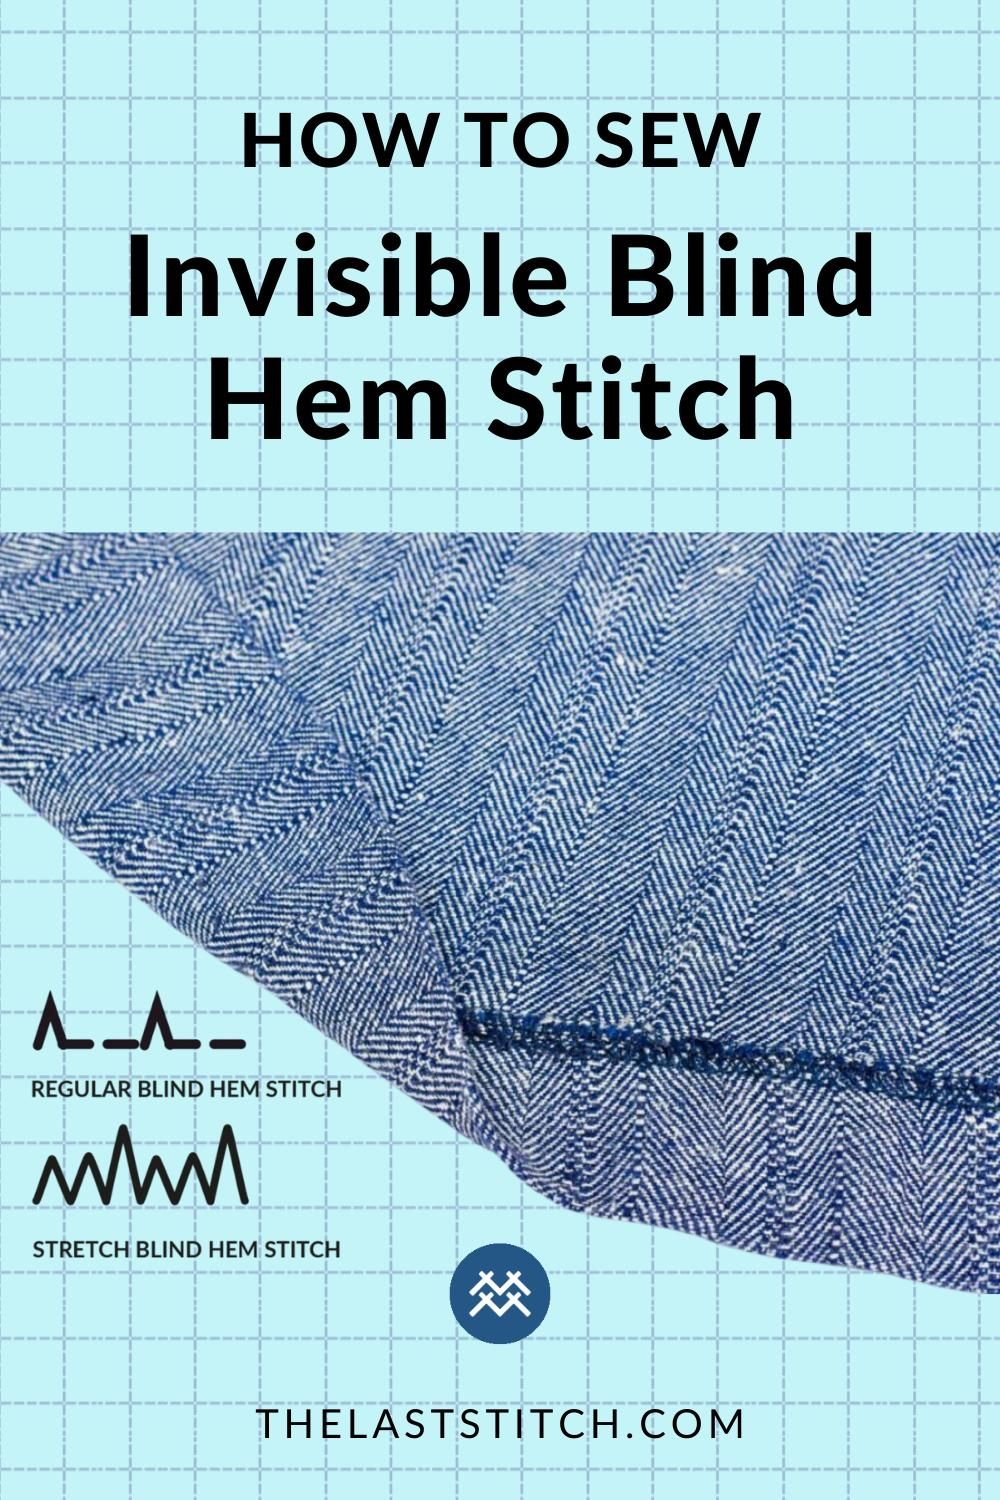 How to Sew Invisible Hem Stitch